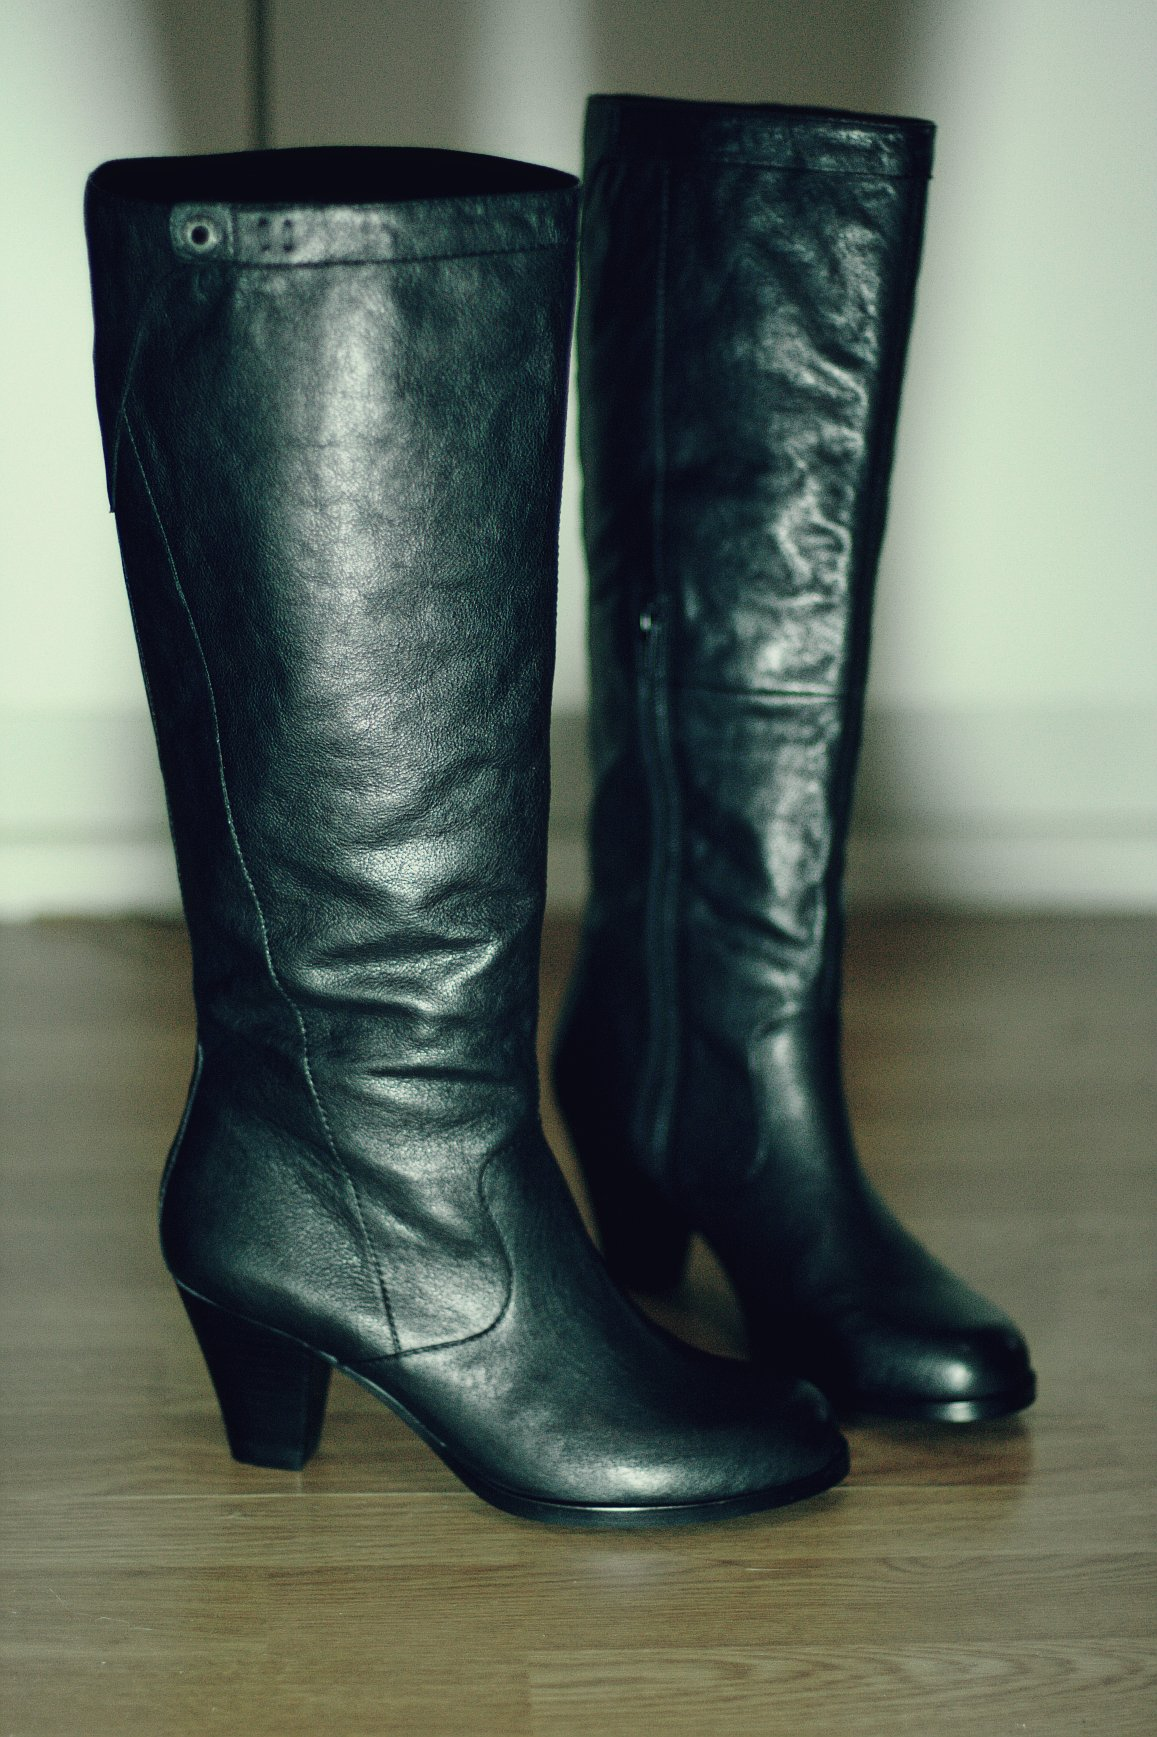 FileHeeled knee boots , Wikimedia Commons